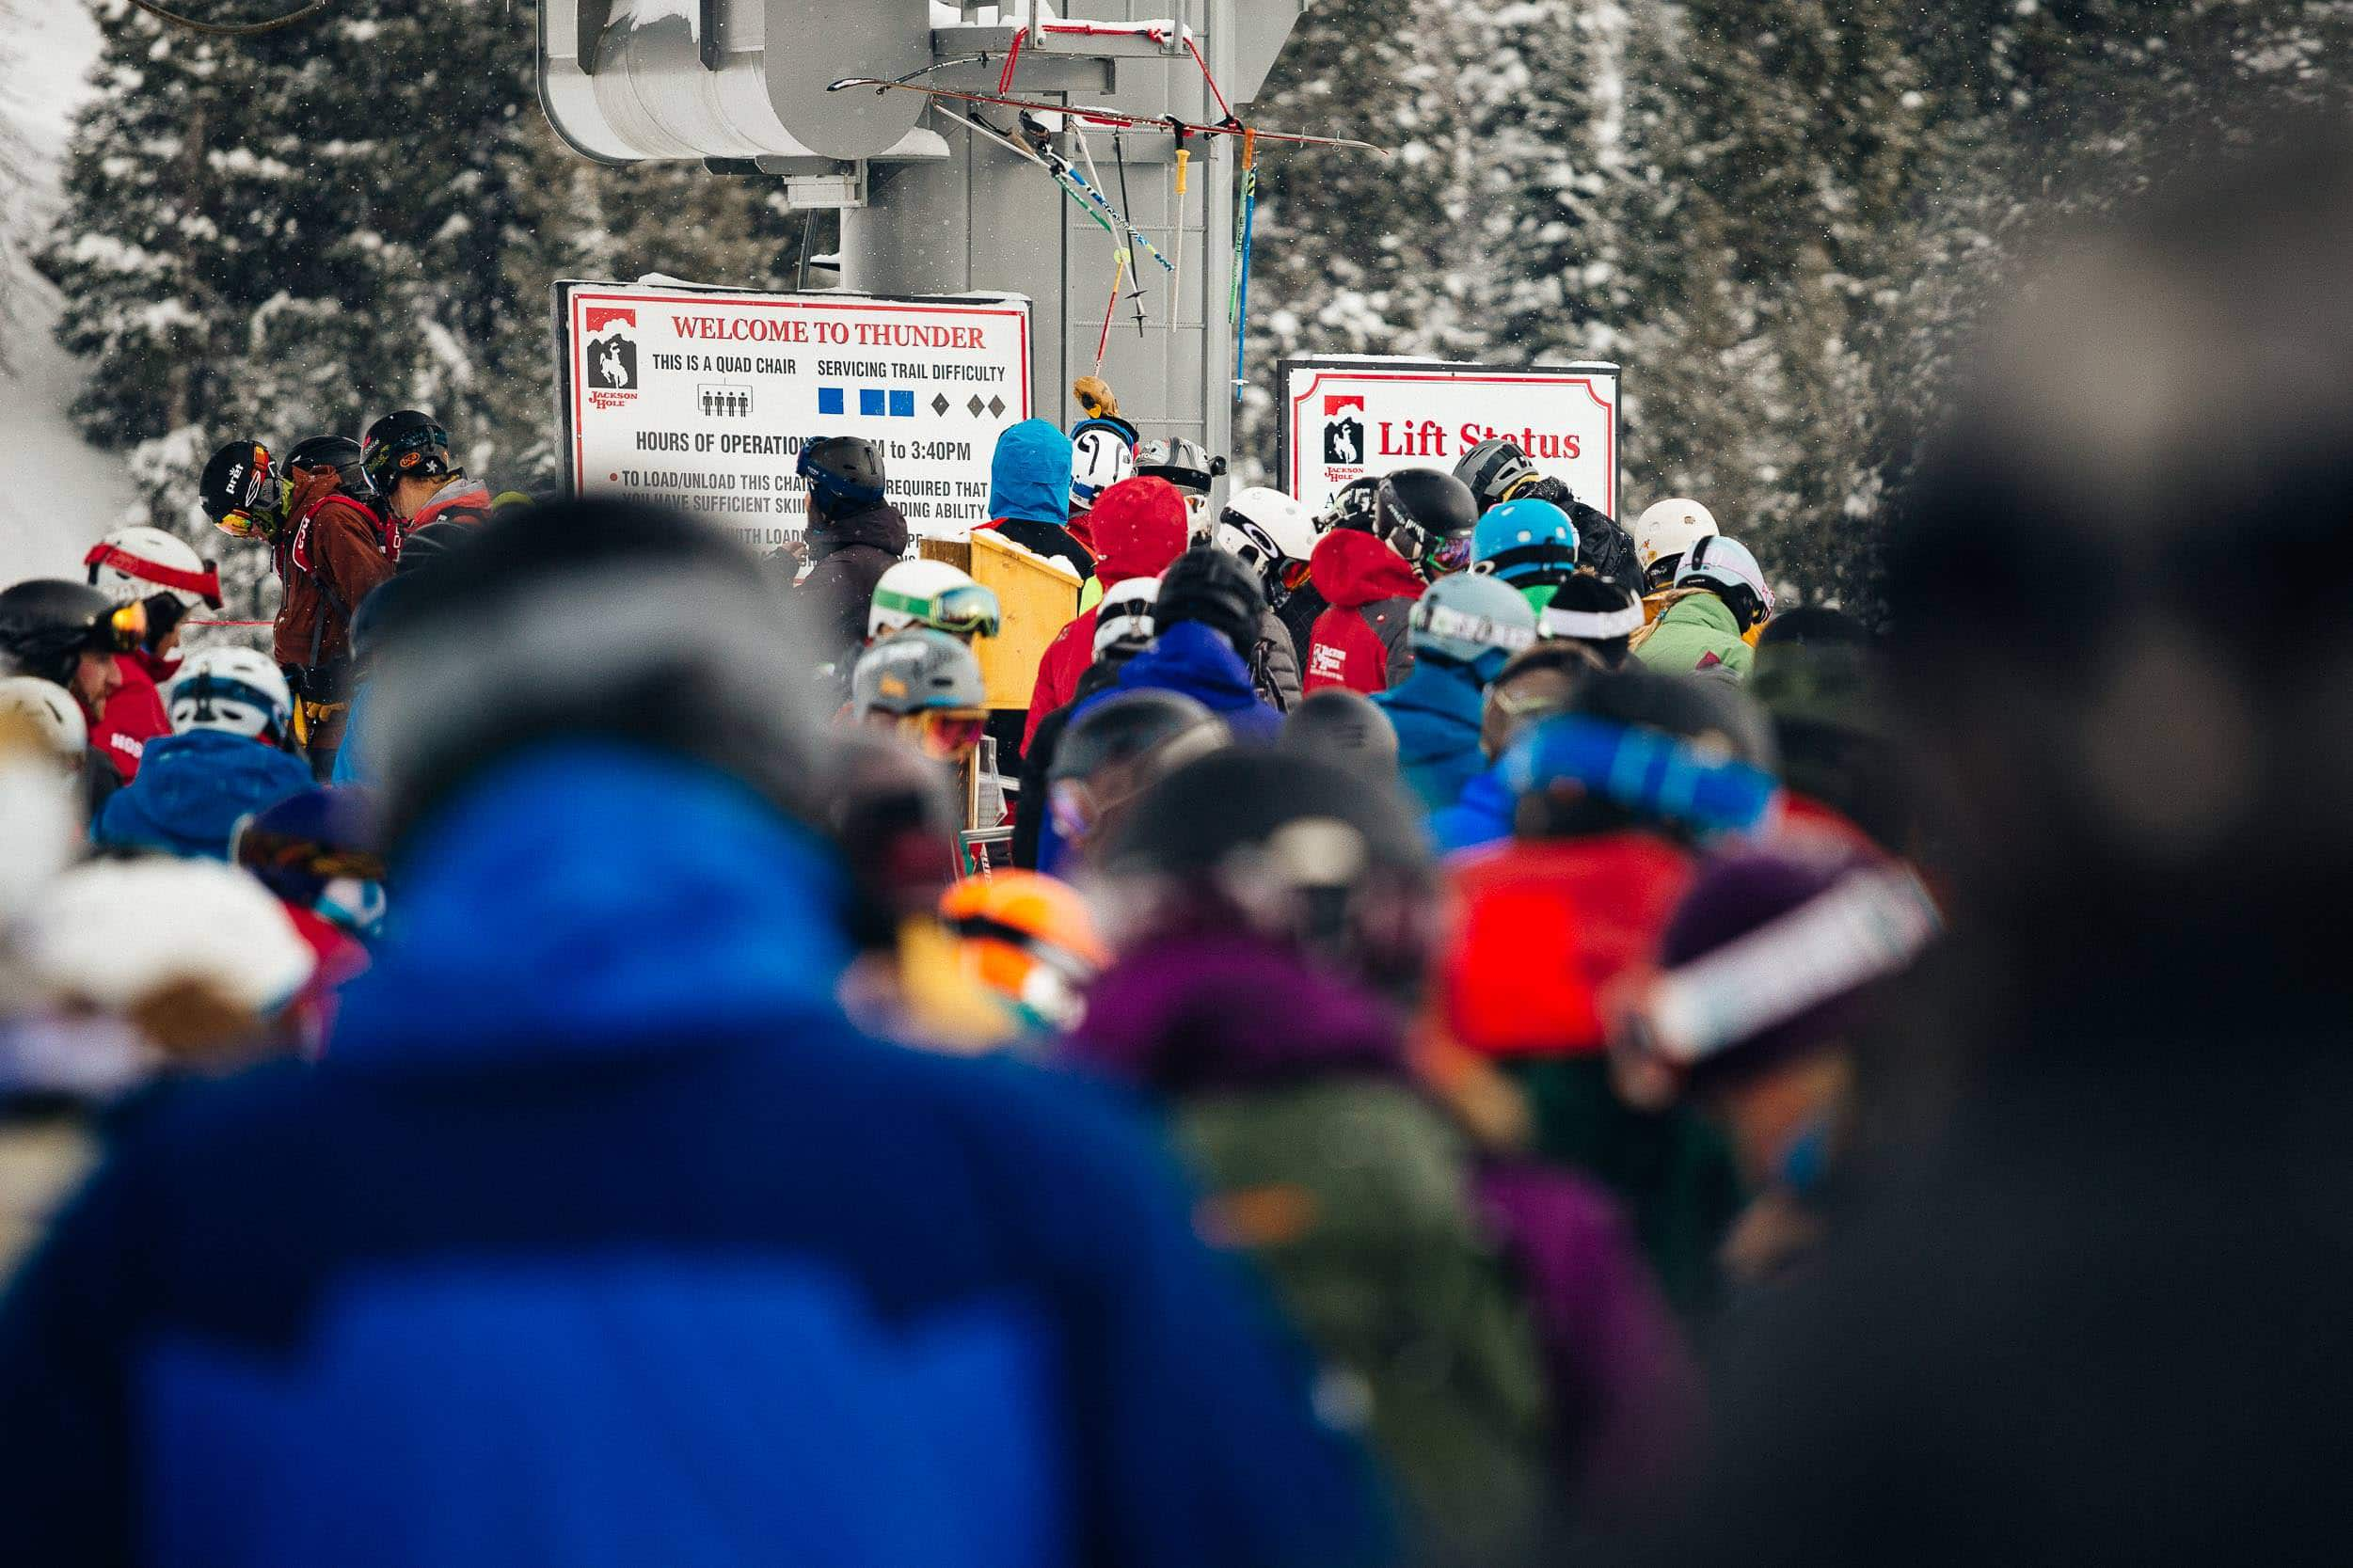 Skiers wait on line at the Thunder chair as a lone skier hits the pole chimes